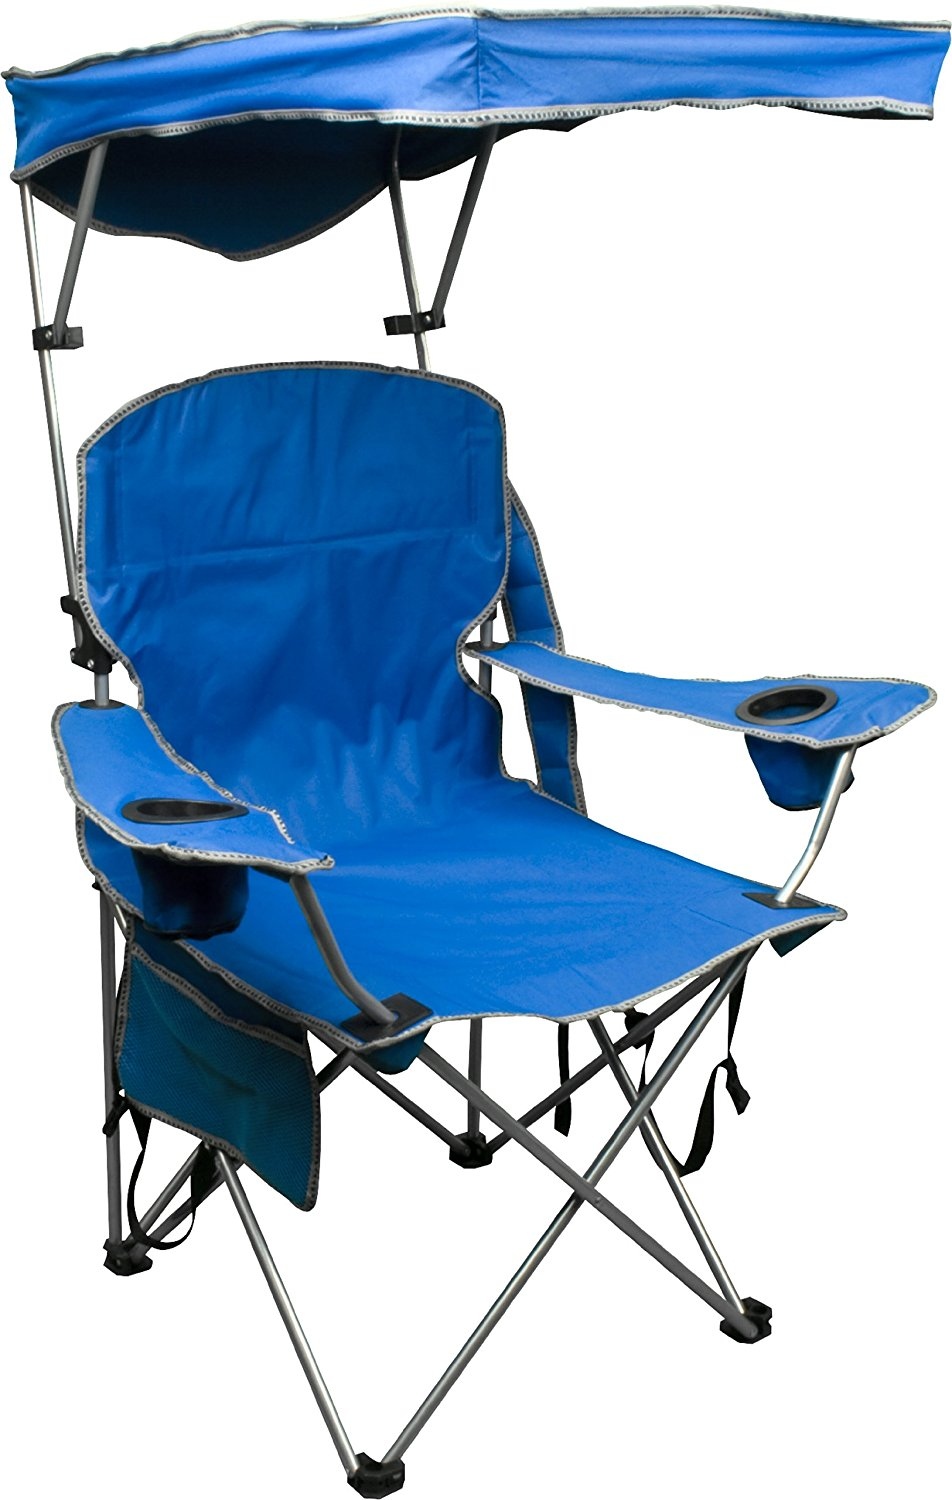 Review of - Quik Shade Adjustable Canopy Folding Camp Chair